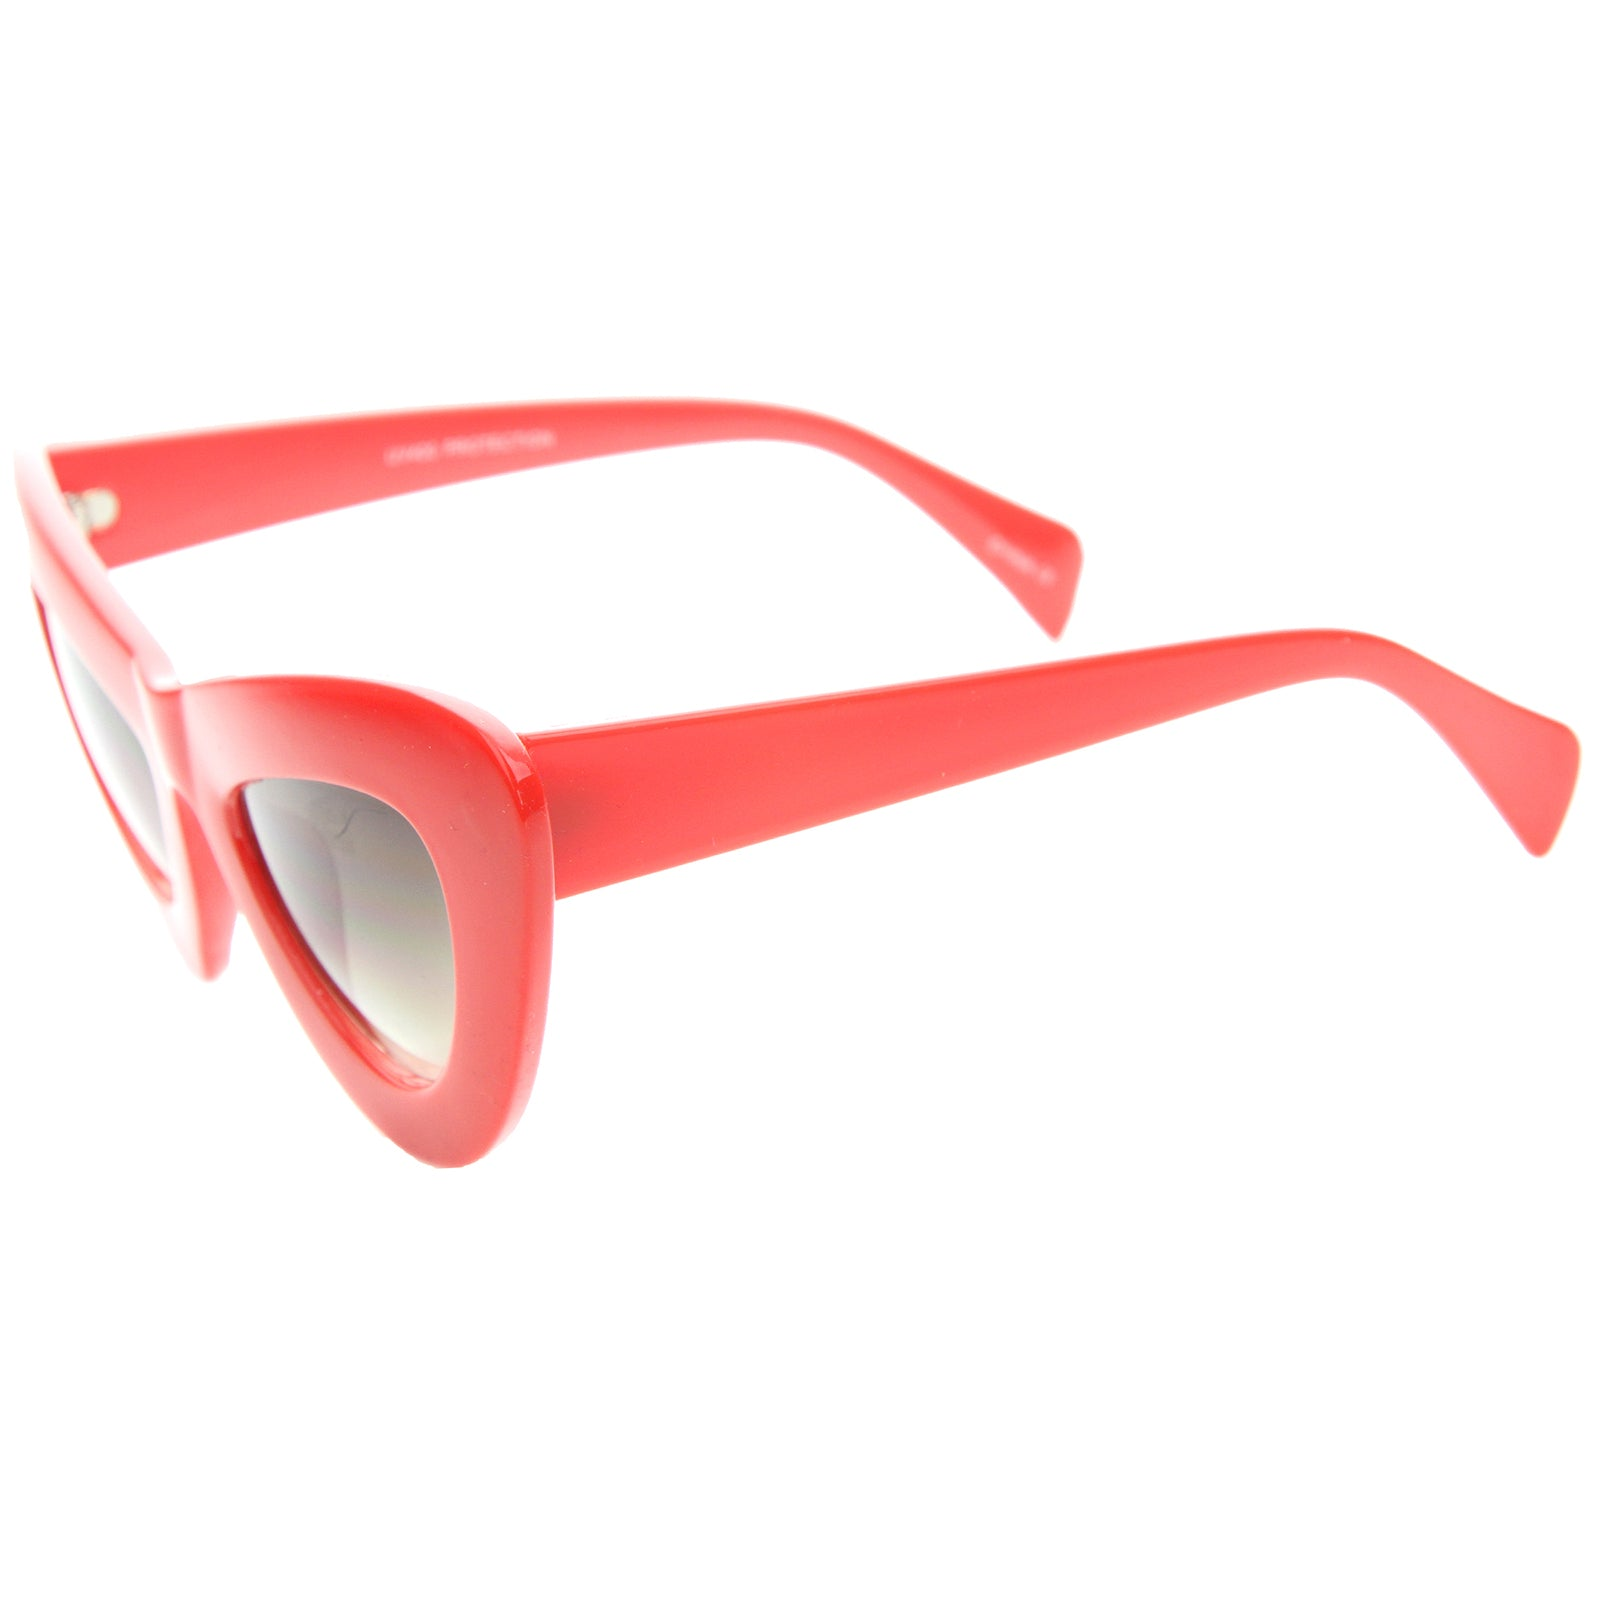 Womens Cat Eye Sunglasses With UV400 Protected Composite Lens - sunglass.la - 11